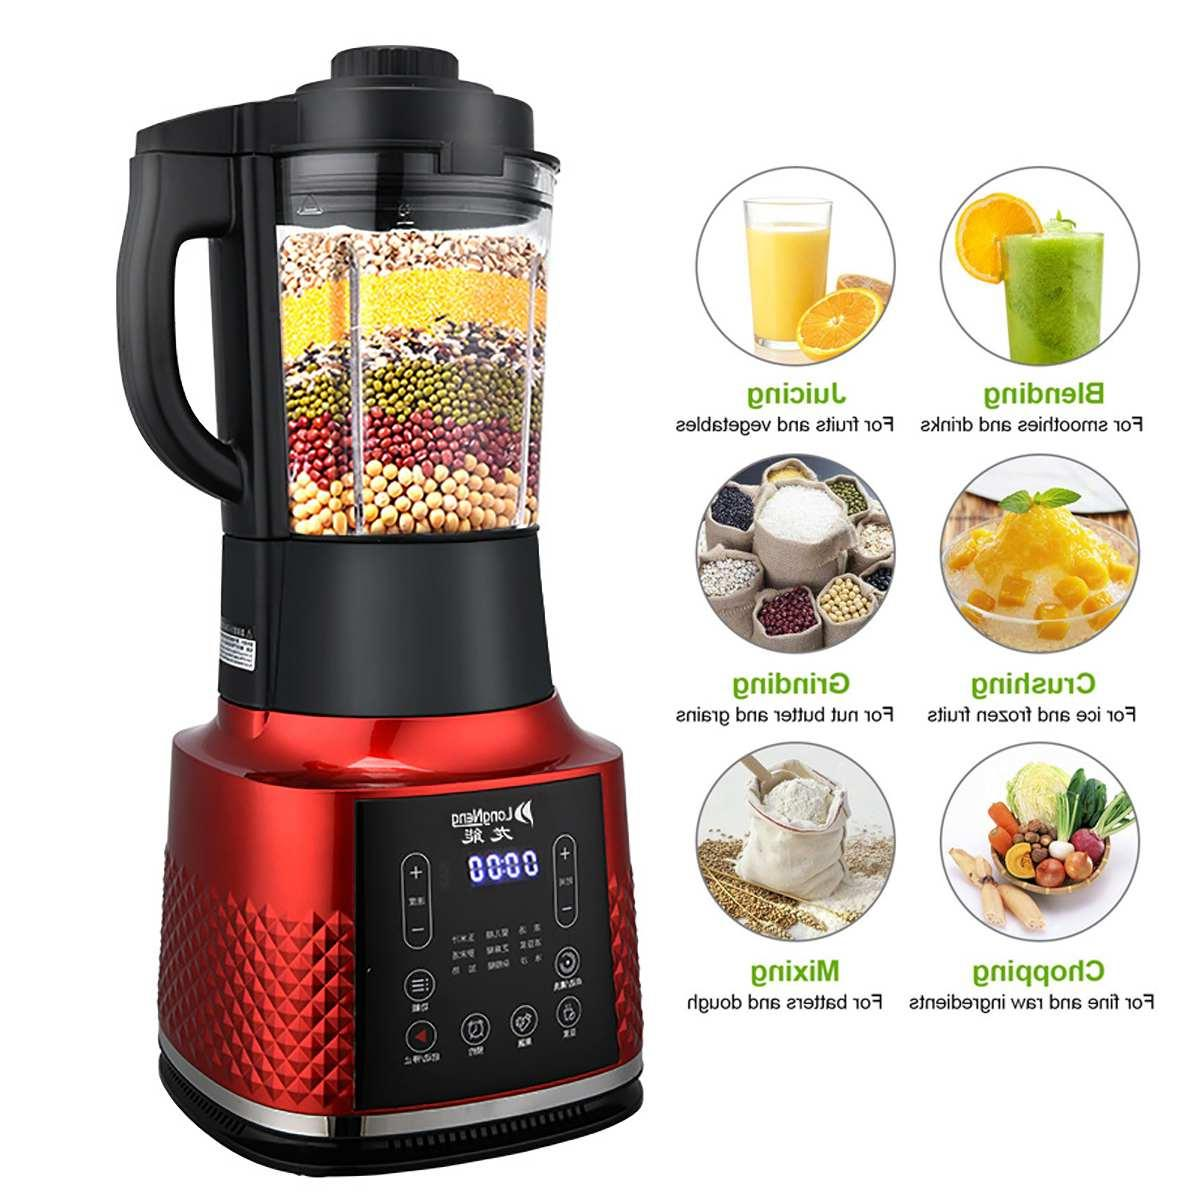 BPA FREE Multi-functional Digital Touchscreen Ultra-fine <font><b>Processor</b></font> with Dry Grinding <font><b>Cup</b></font>